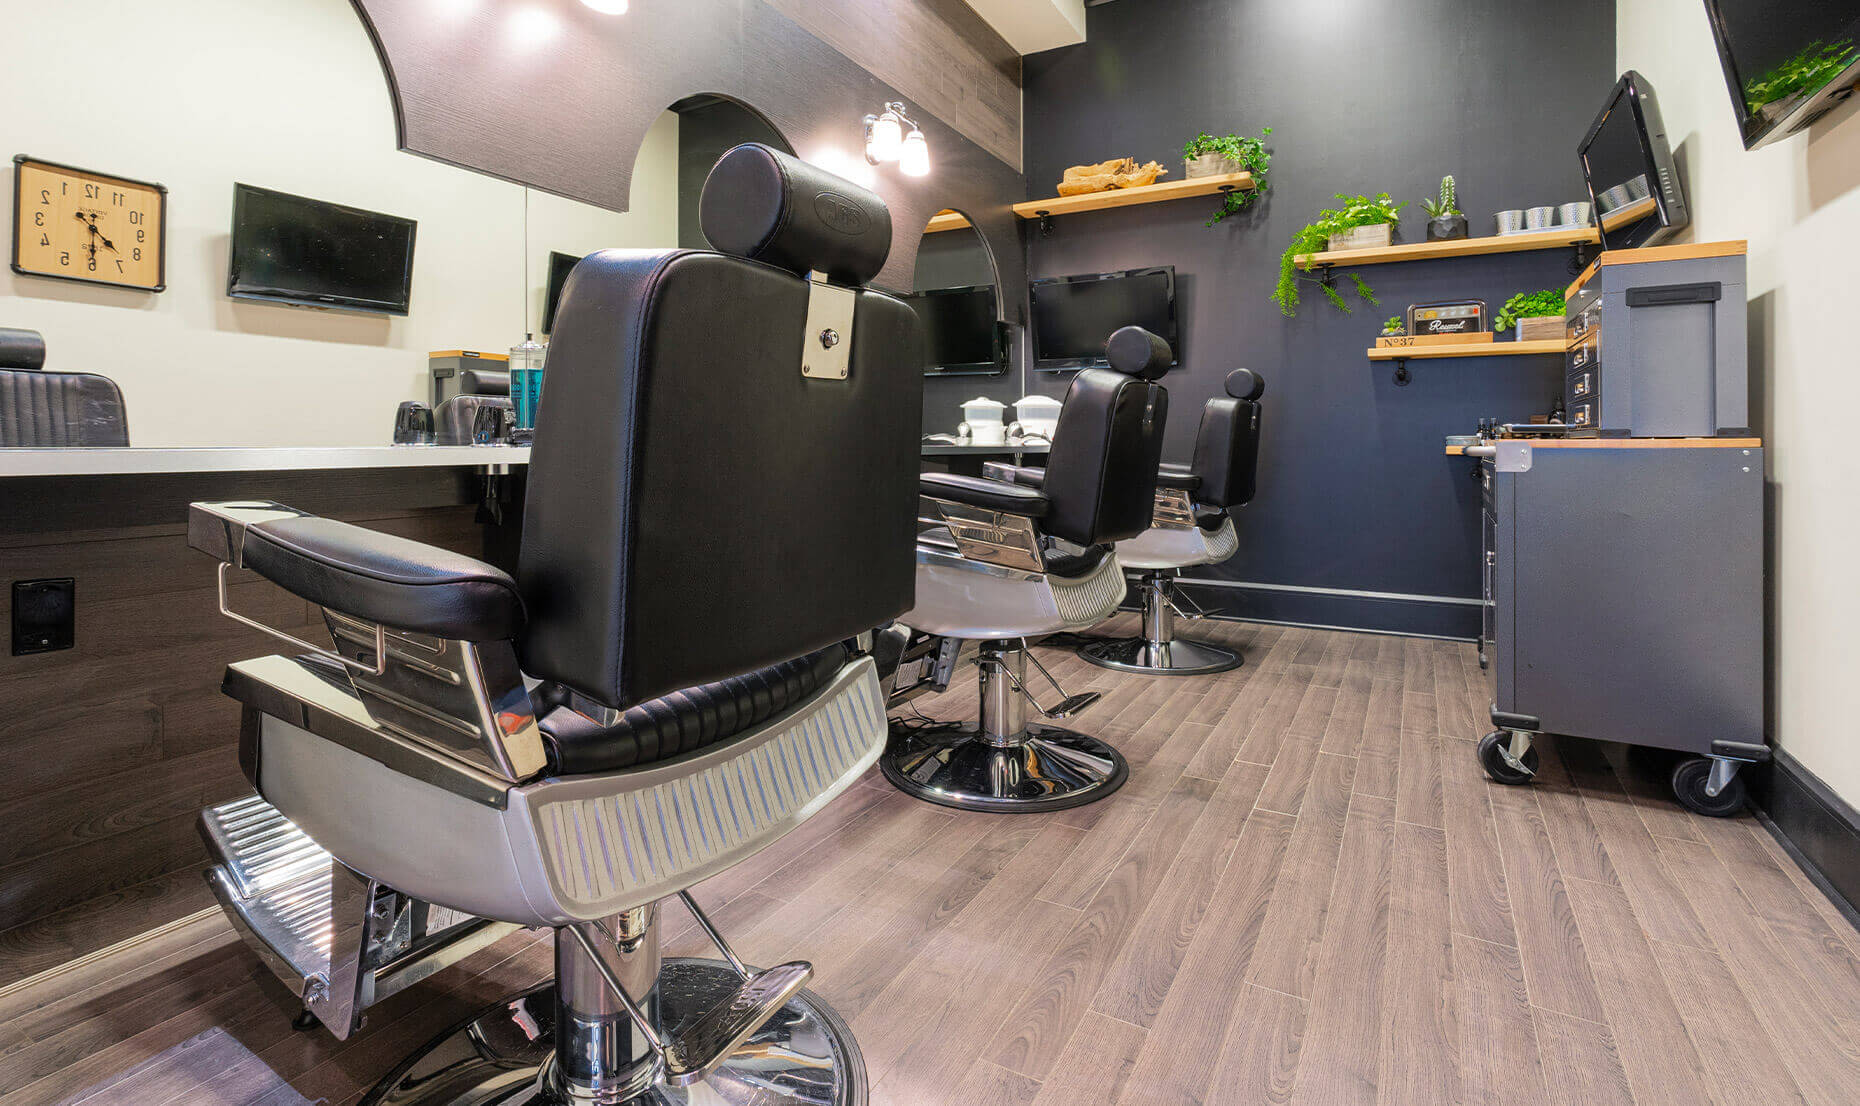 Hair salon for him | Men's grooming lounge | Haircut & shave